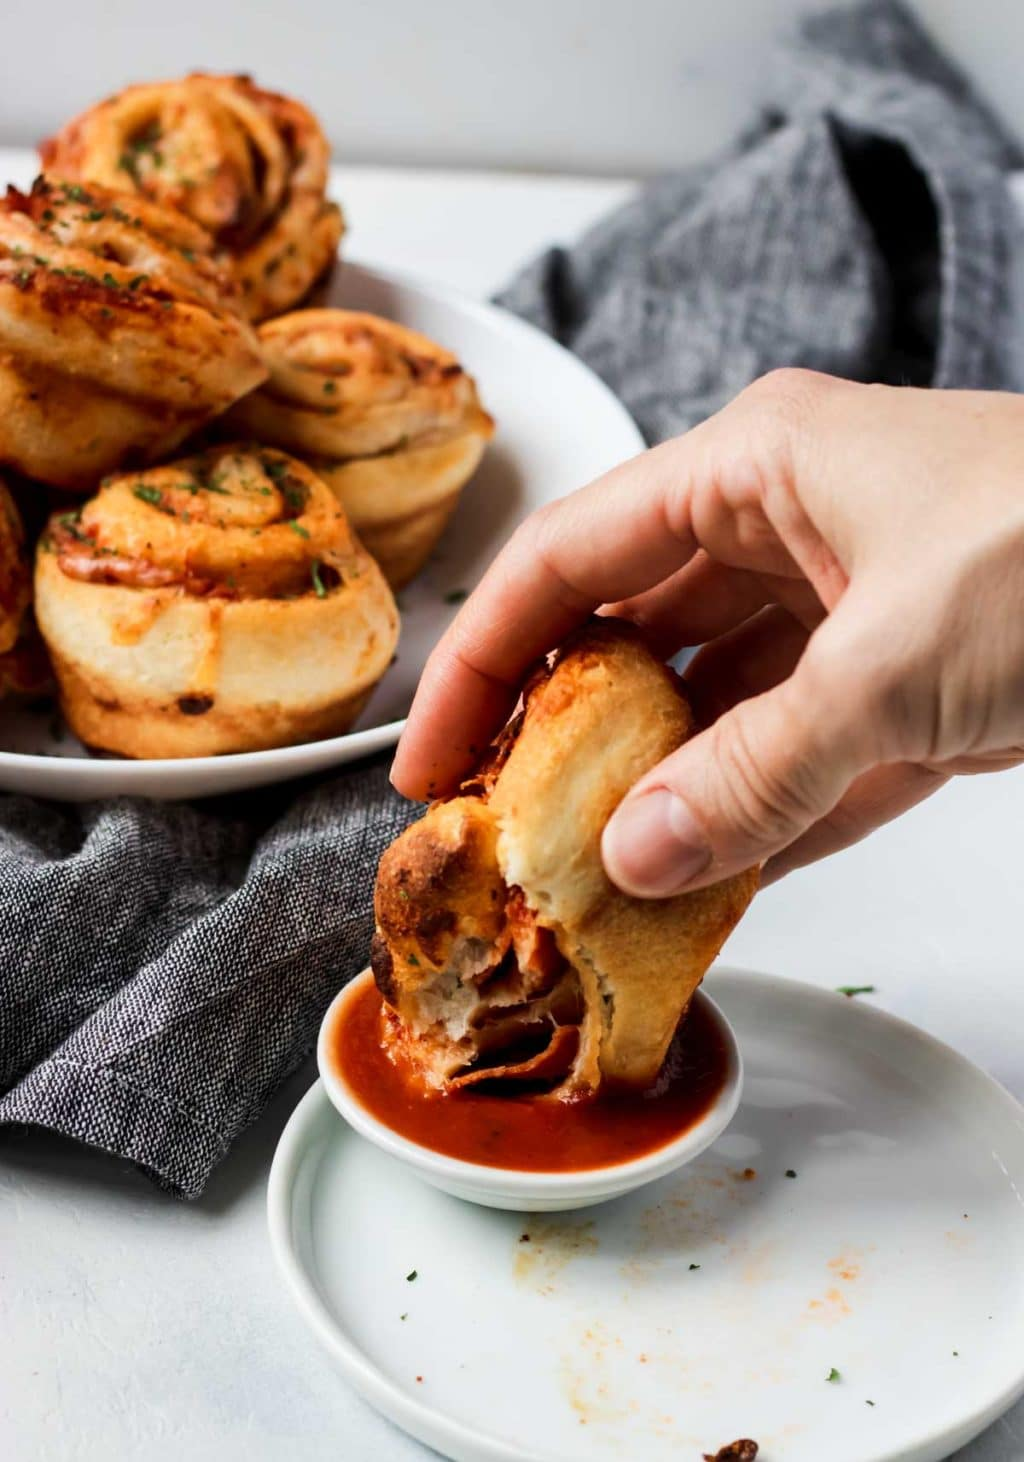 Pizza Roll Up being dipped in marinara sauce